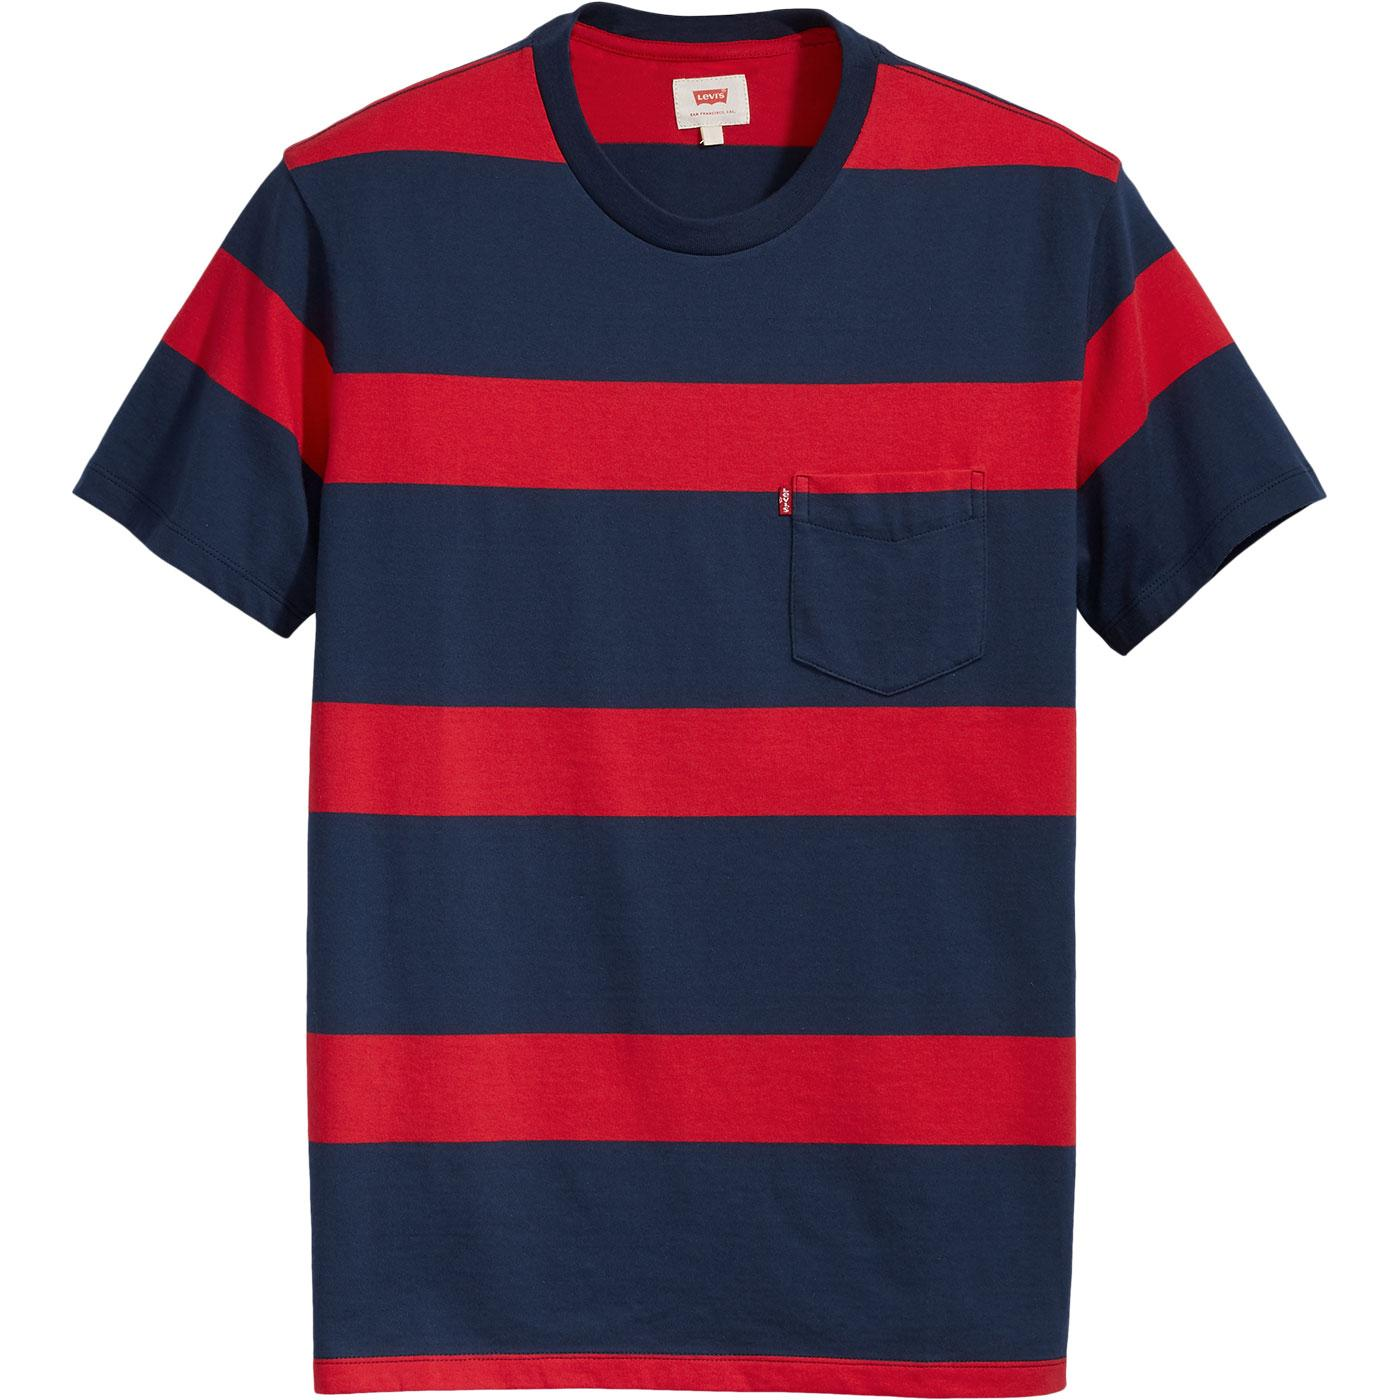 LEVI'S Mod Stripe Sunset Pocket T-shirt (Red/Navy)